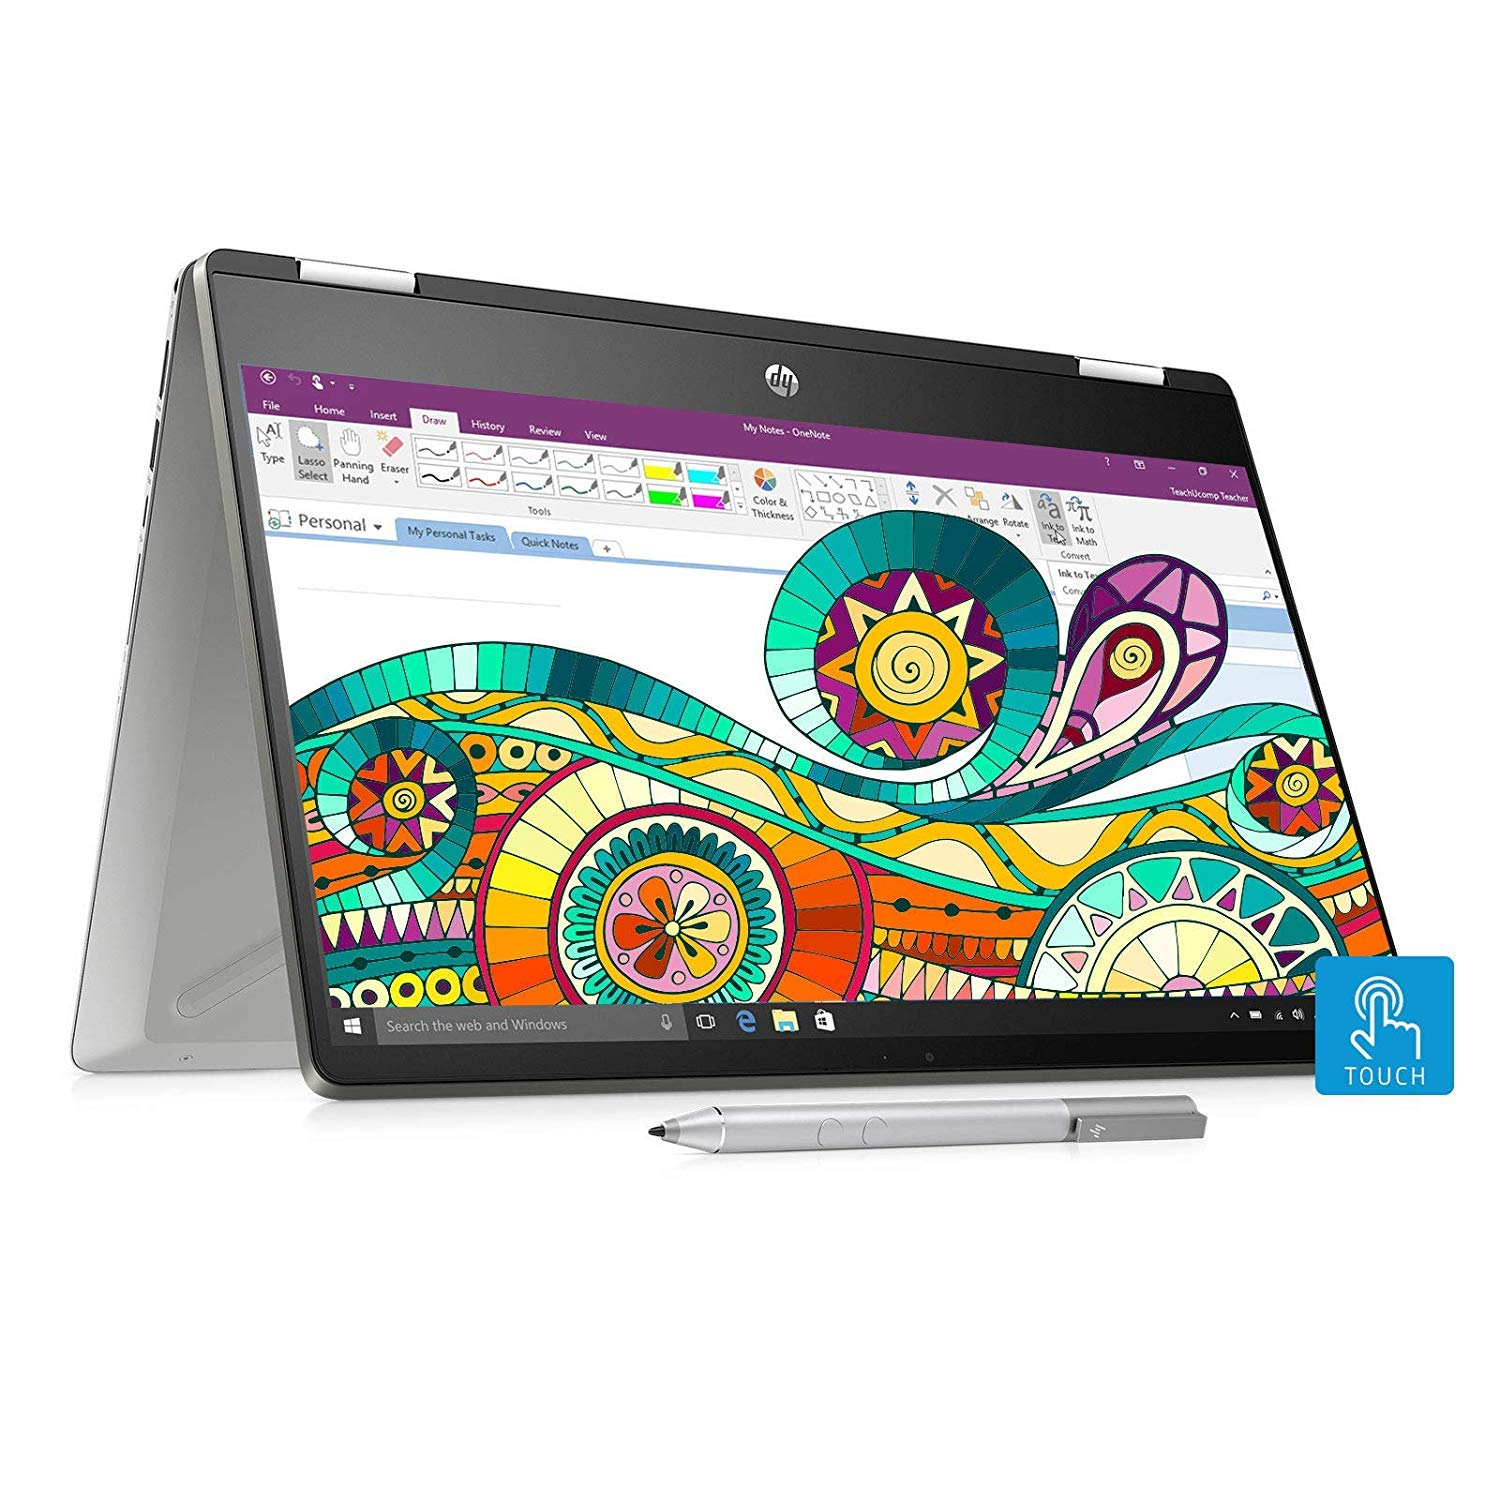 HP Pavilion x360 2 in 1 Laptop